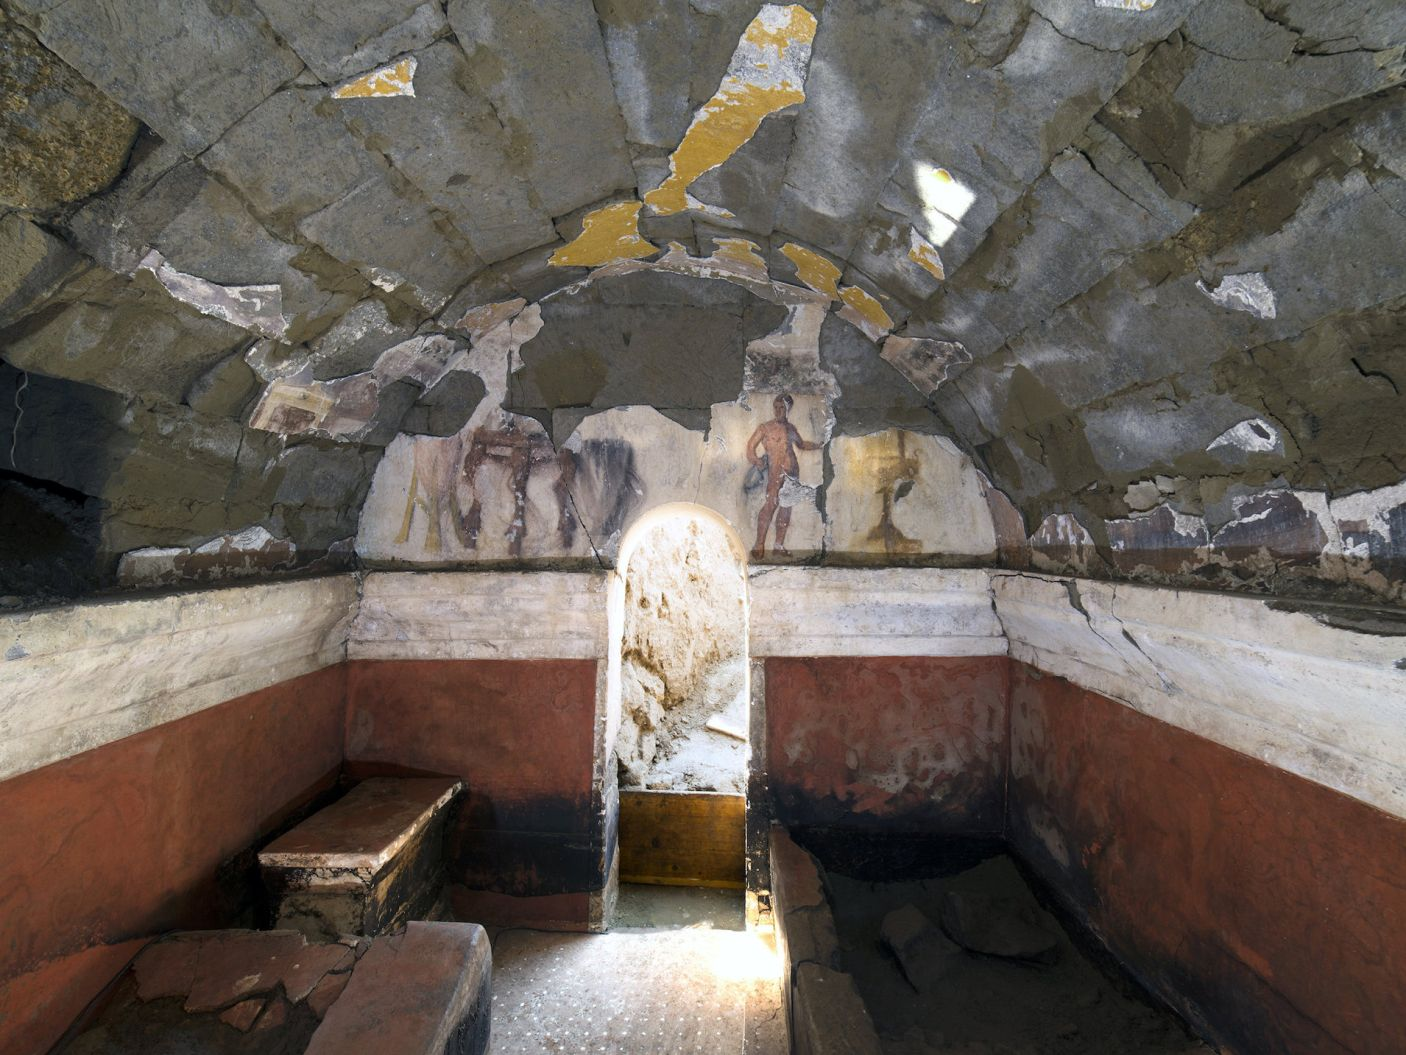 View of the intriguing wall from inside the tomb chamber